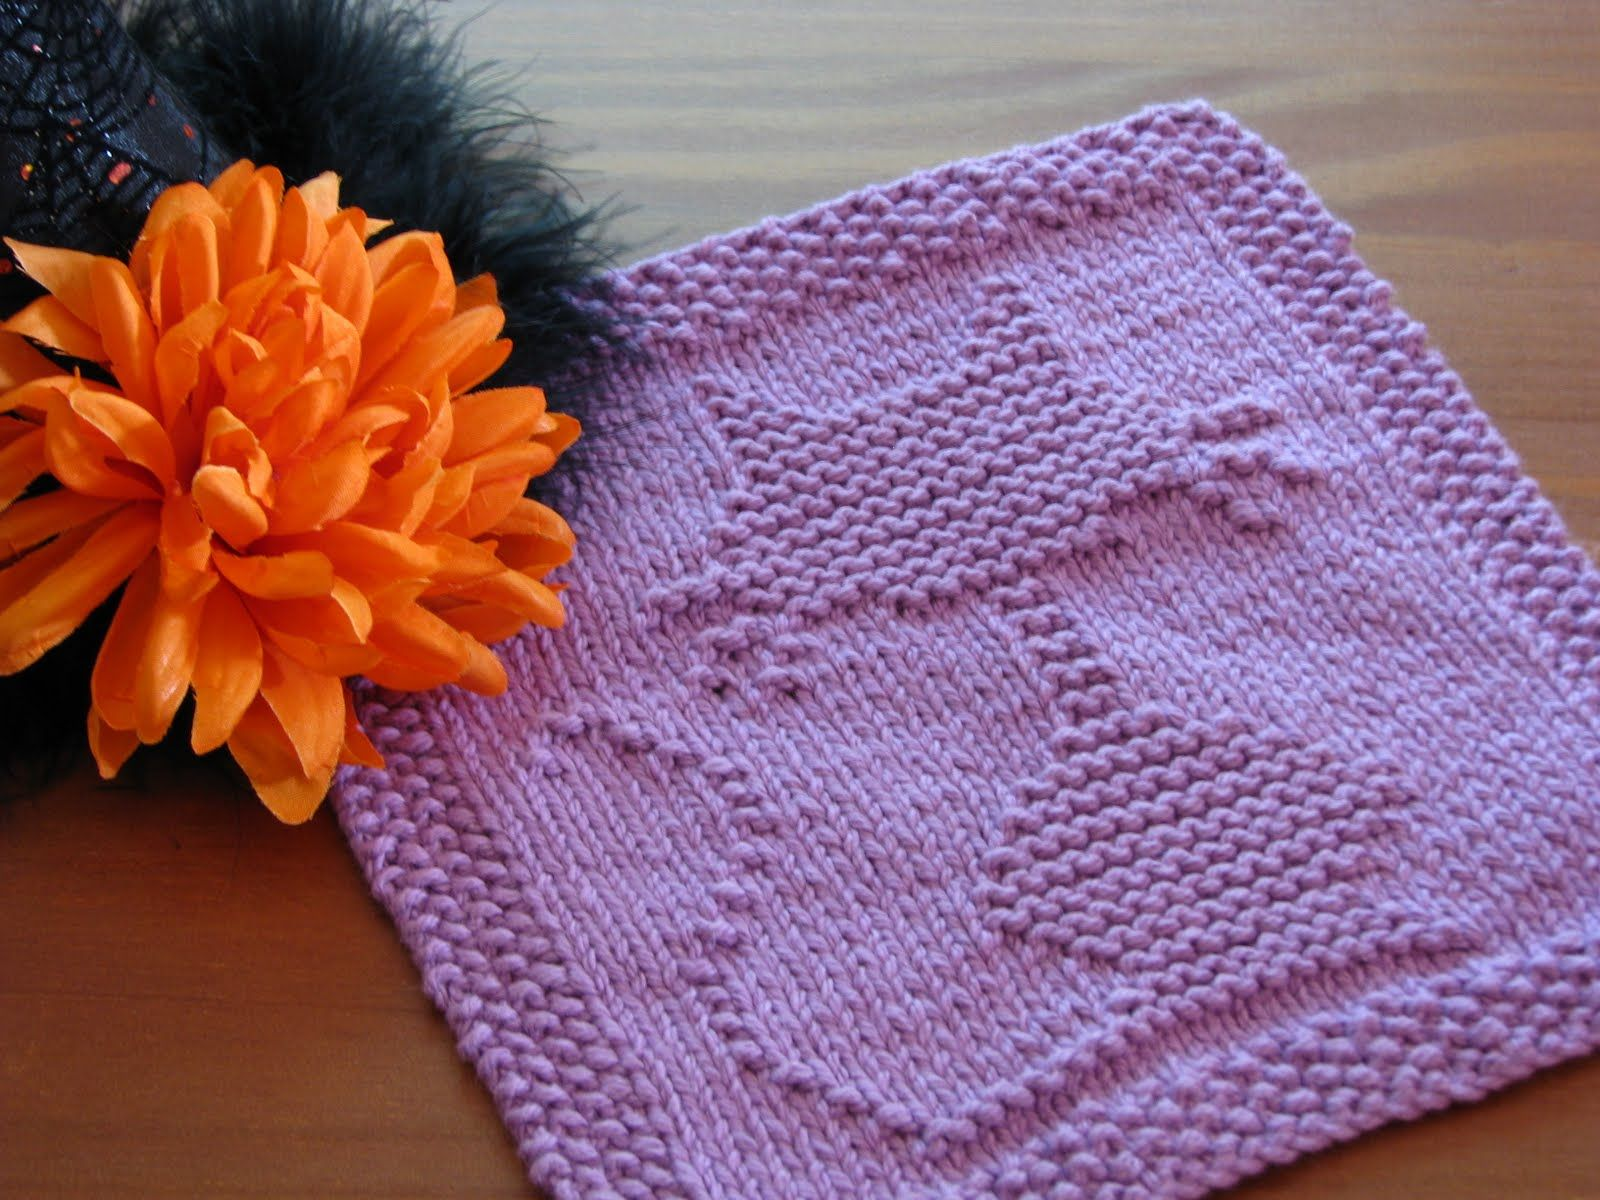 This not so scary halloween cat is a hit at our house this free pattern one crafty mama halloween cat dishcloth or anytime dish cloth bankloansurffo Gallery